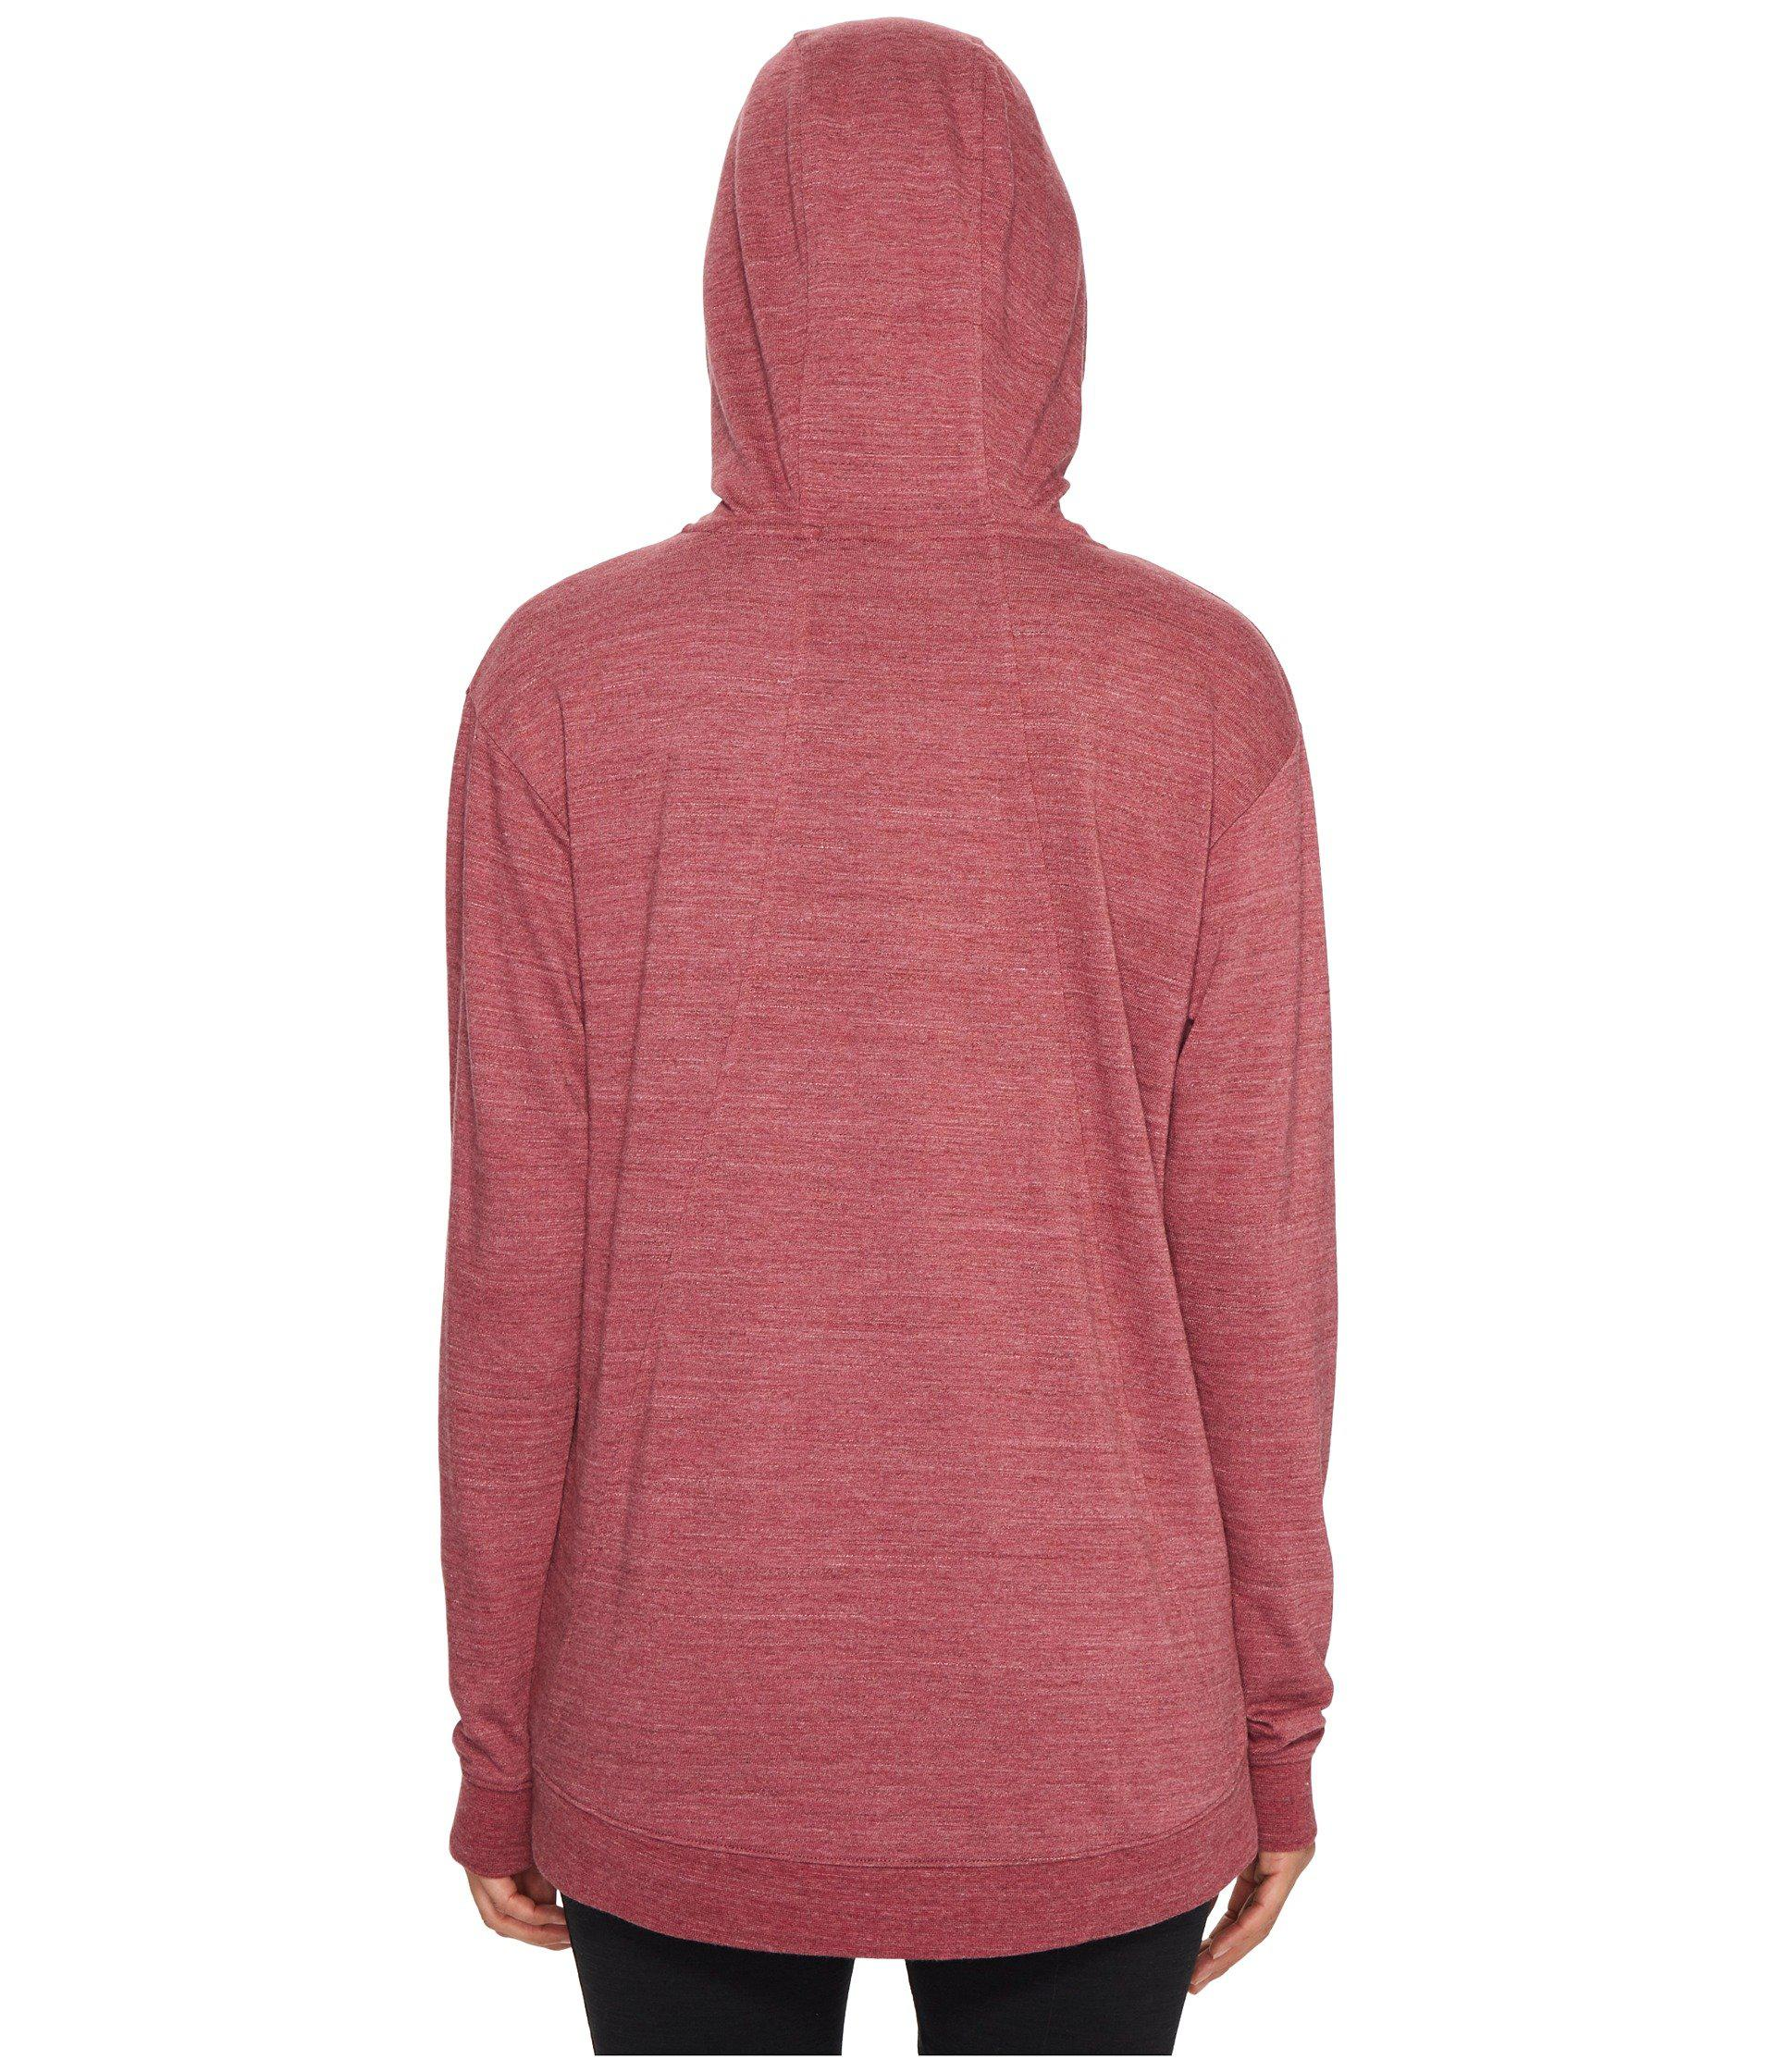 917048f59586 Lyst - Nike Sportswear Gym Classic Pullover Hoodie in Red